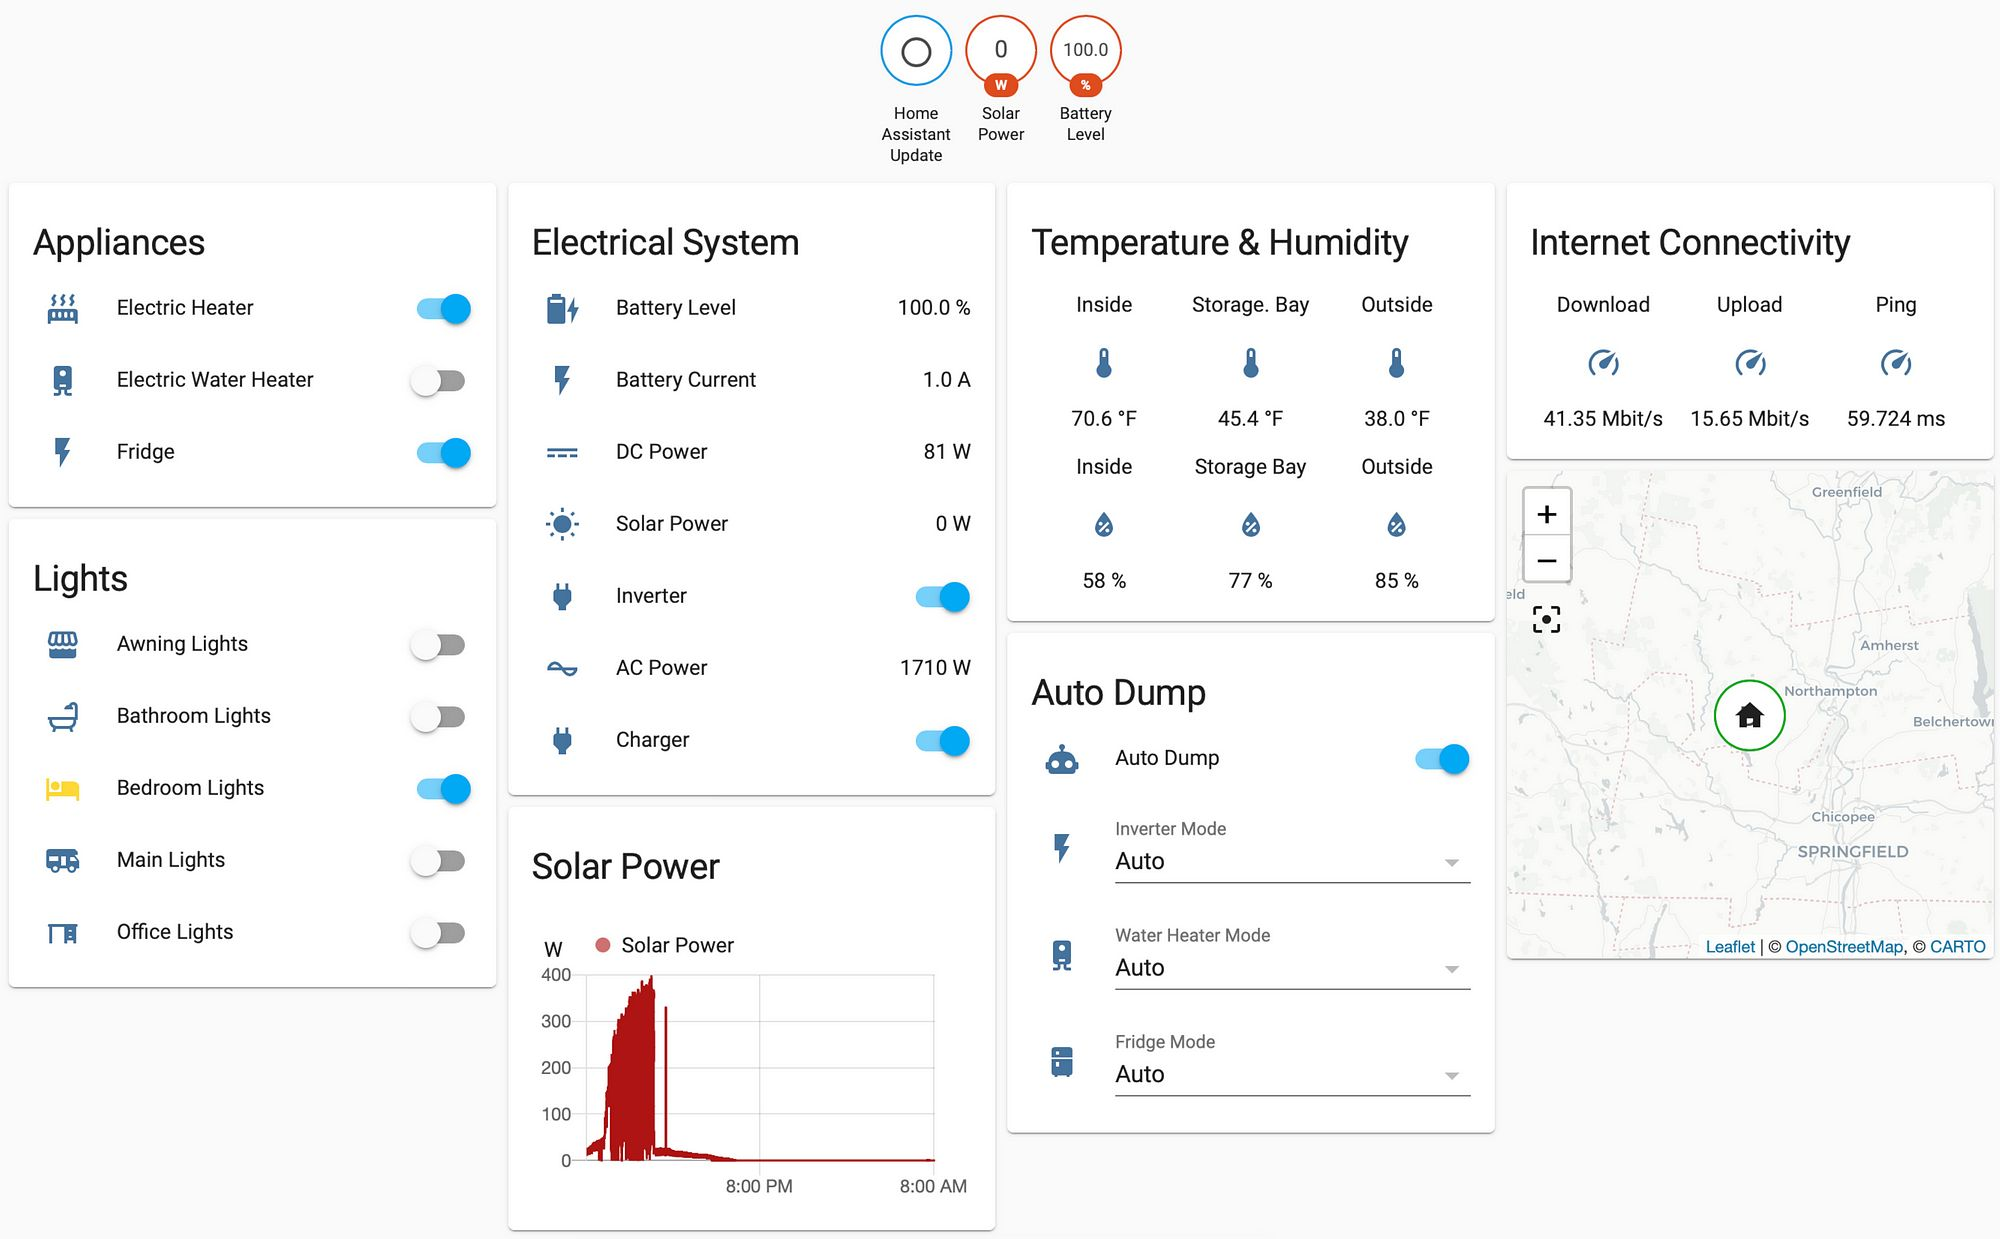 Home Assistant RV Dashboard